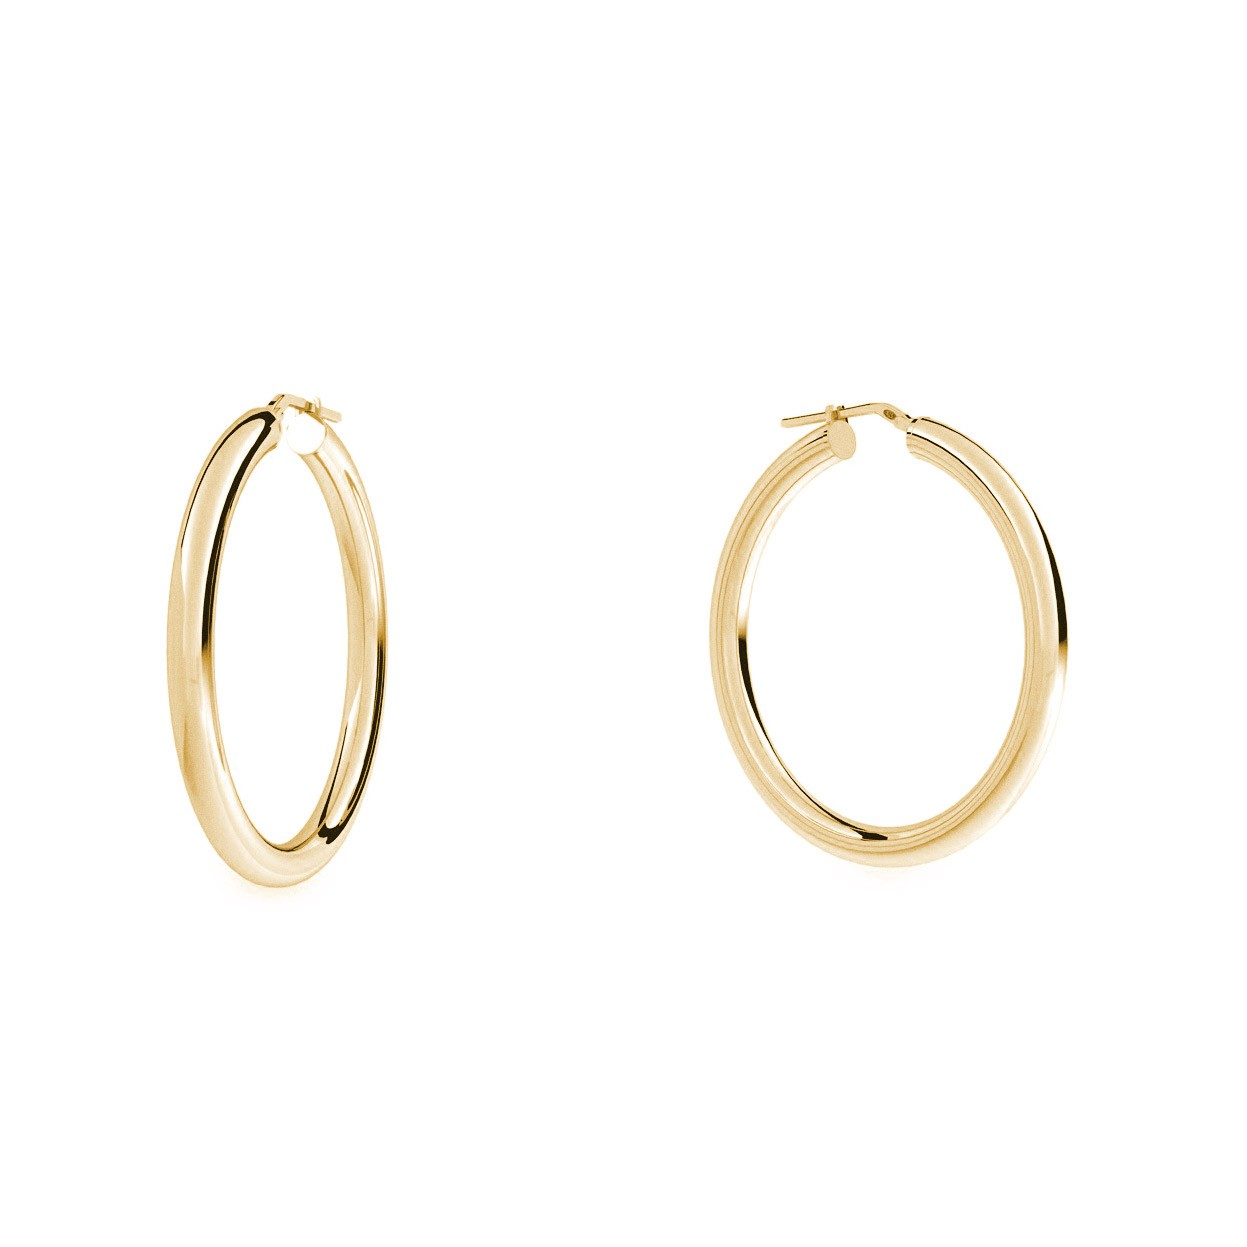 Round hoop earrings 5 cm with clasp, silver 925